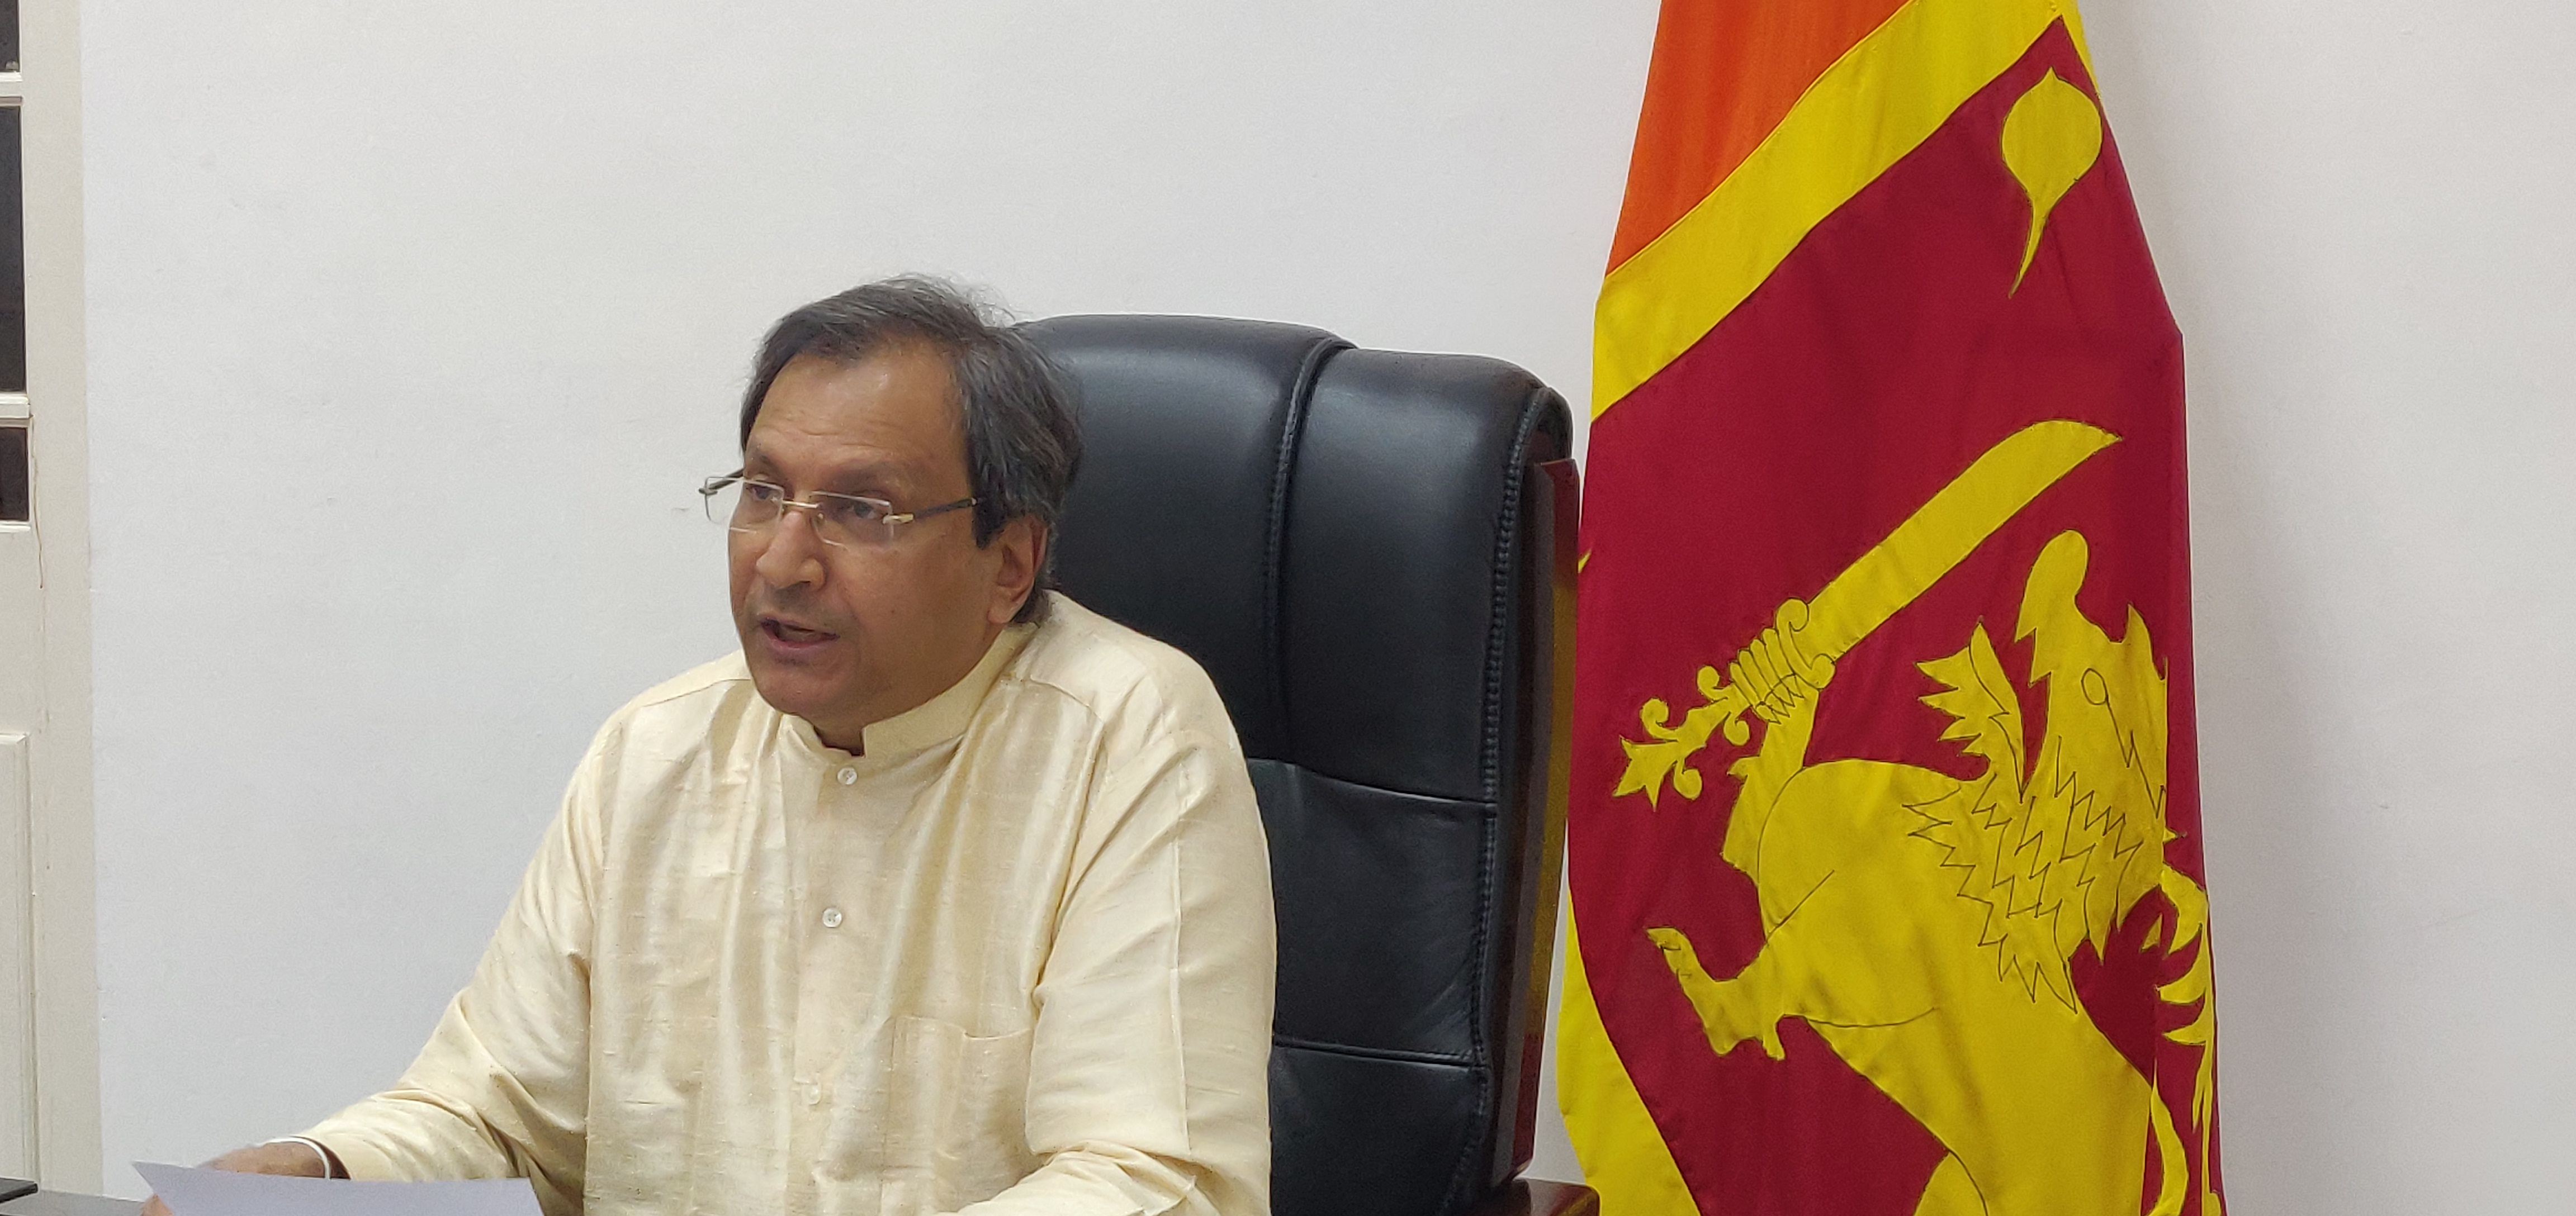 """FOREIGN SECRETARY ARYASINHA SAYS """"FUTURE FOOTPRINT OF FOREIGN EMPLOYMENT SRI LANKA WILL PROVIDE THE WORLD, THOUGH PROBABLY SMALLER, COULD BE SMARTER AND MORE SUSTAINABLE"""""""